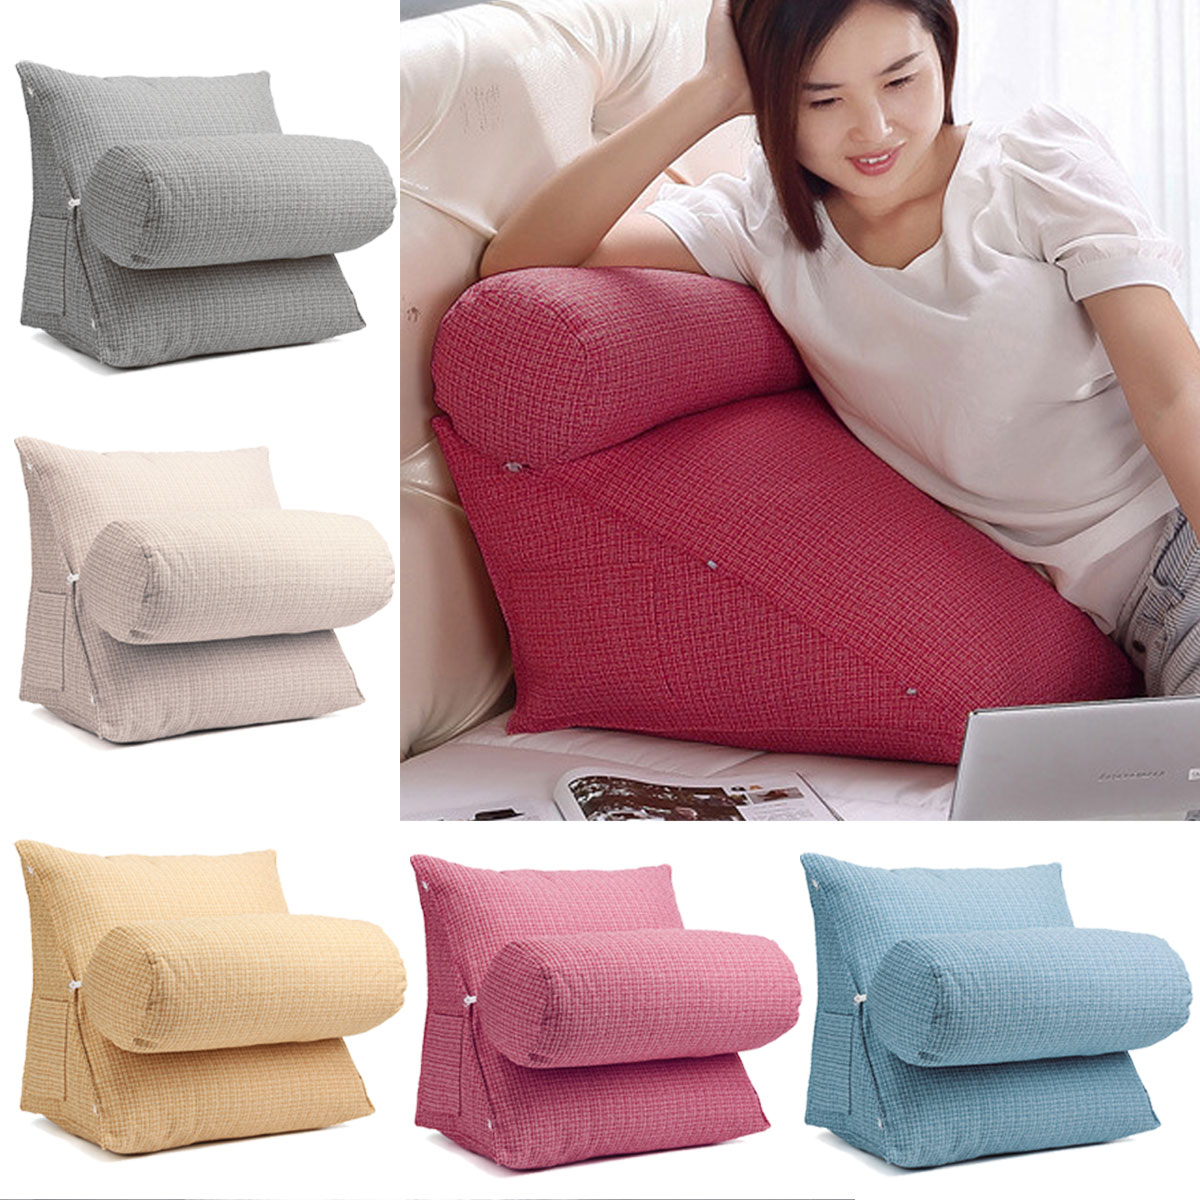 adjustable back wedge zipper cushion pillow sofa bed office chair rest waist neck support with phone pocket